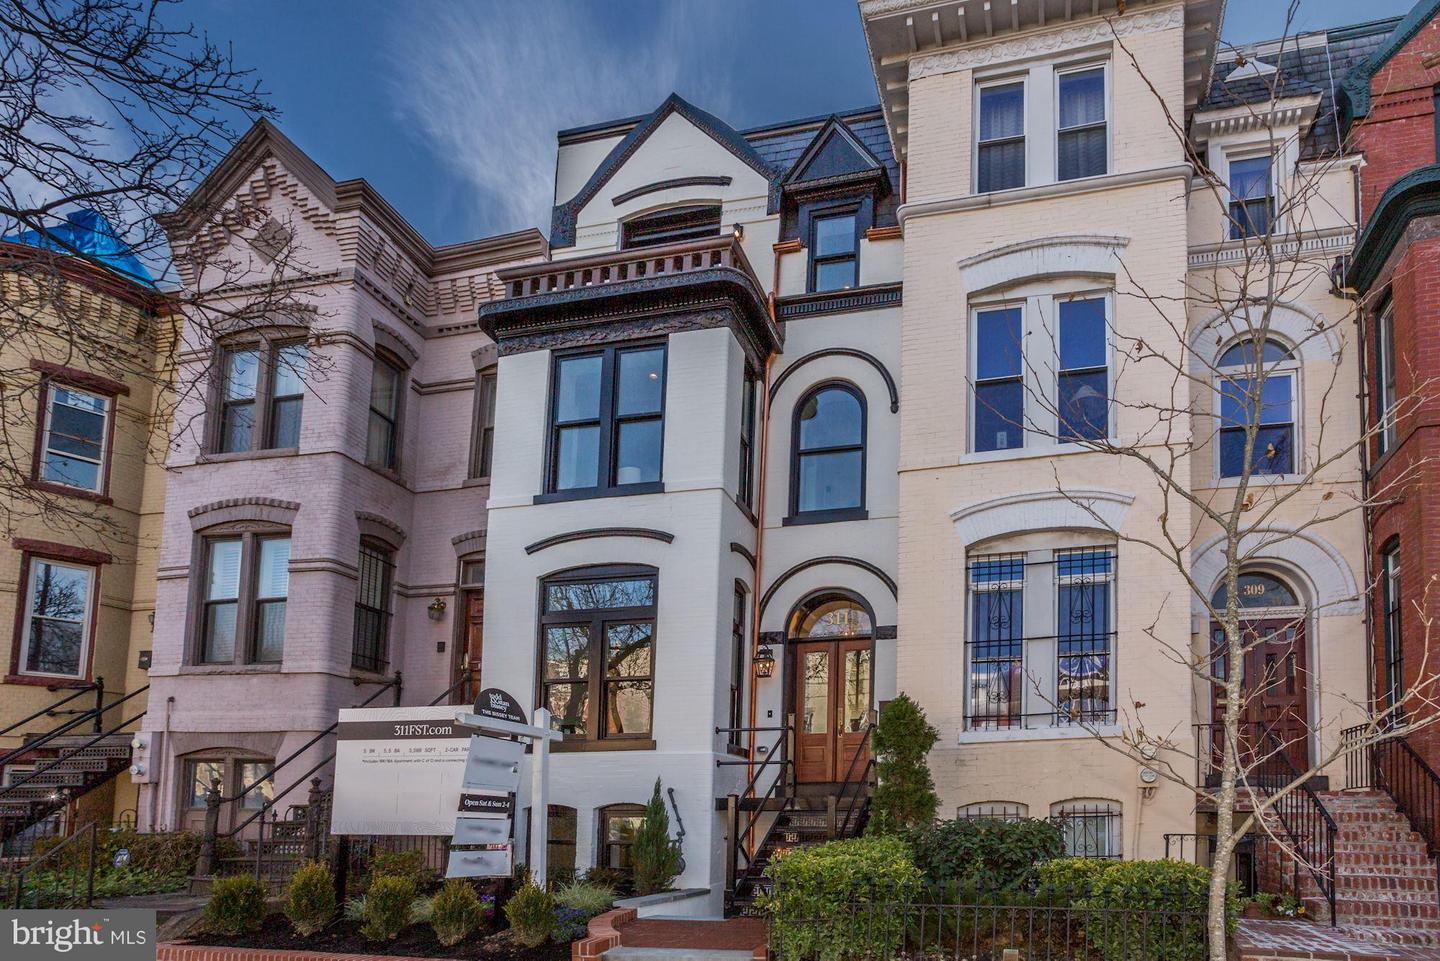 Single Family Home for Sale at 311 F St NE Washington, District Of Columbia 20002 United States